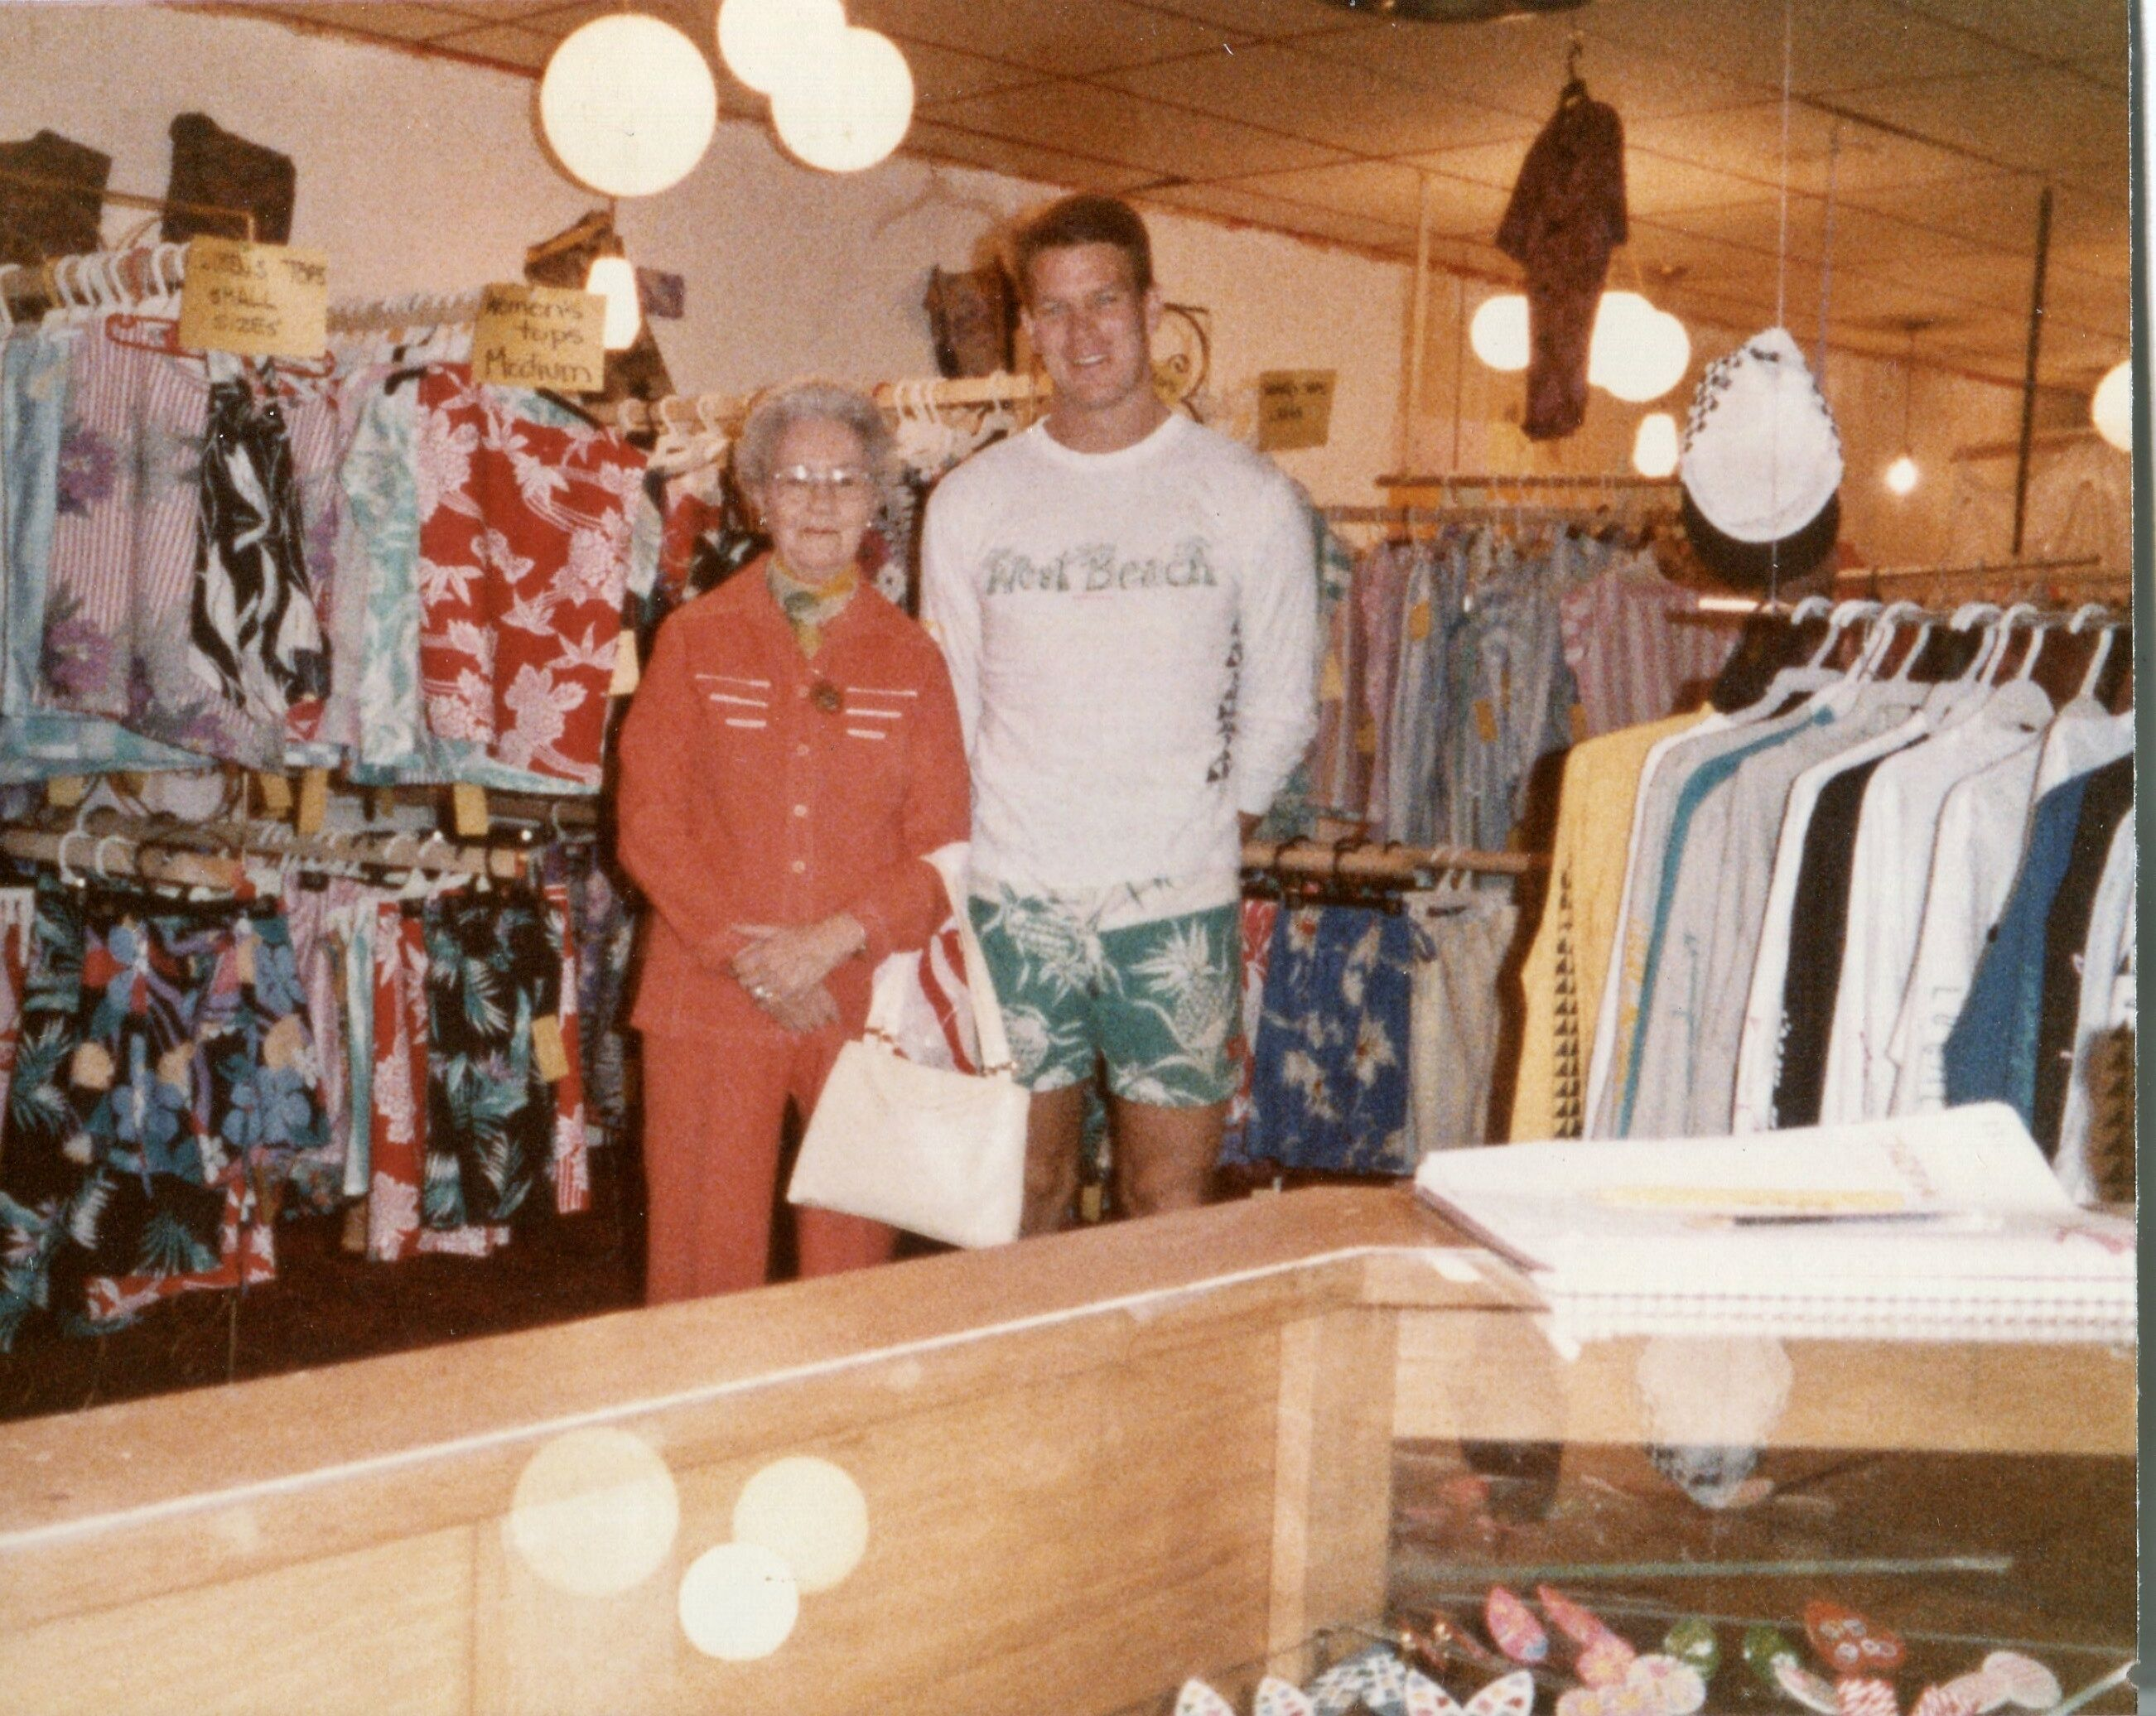 With my Nana at the first Westbeach store, Calgary 1981